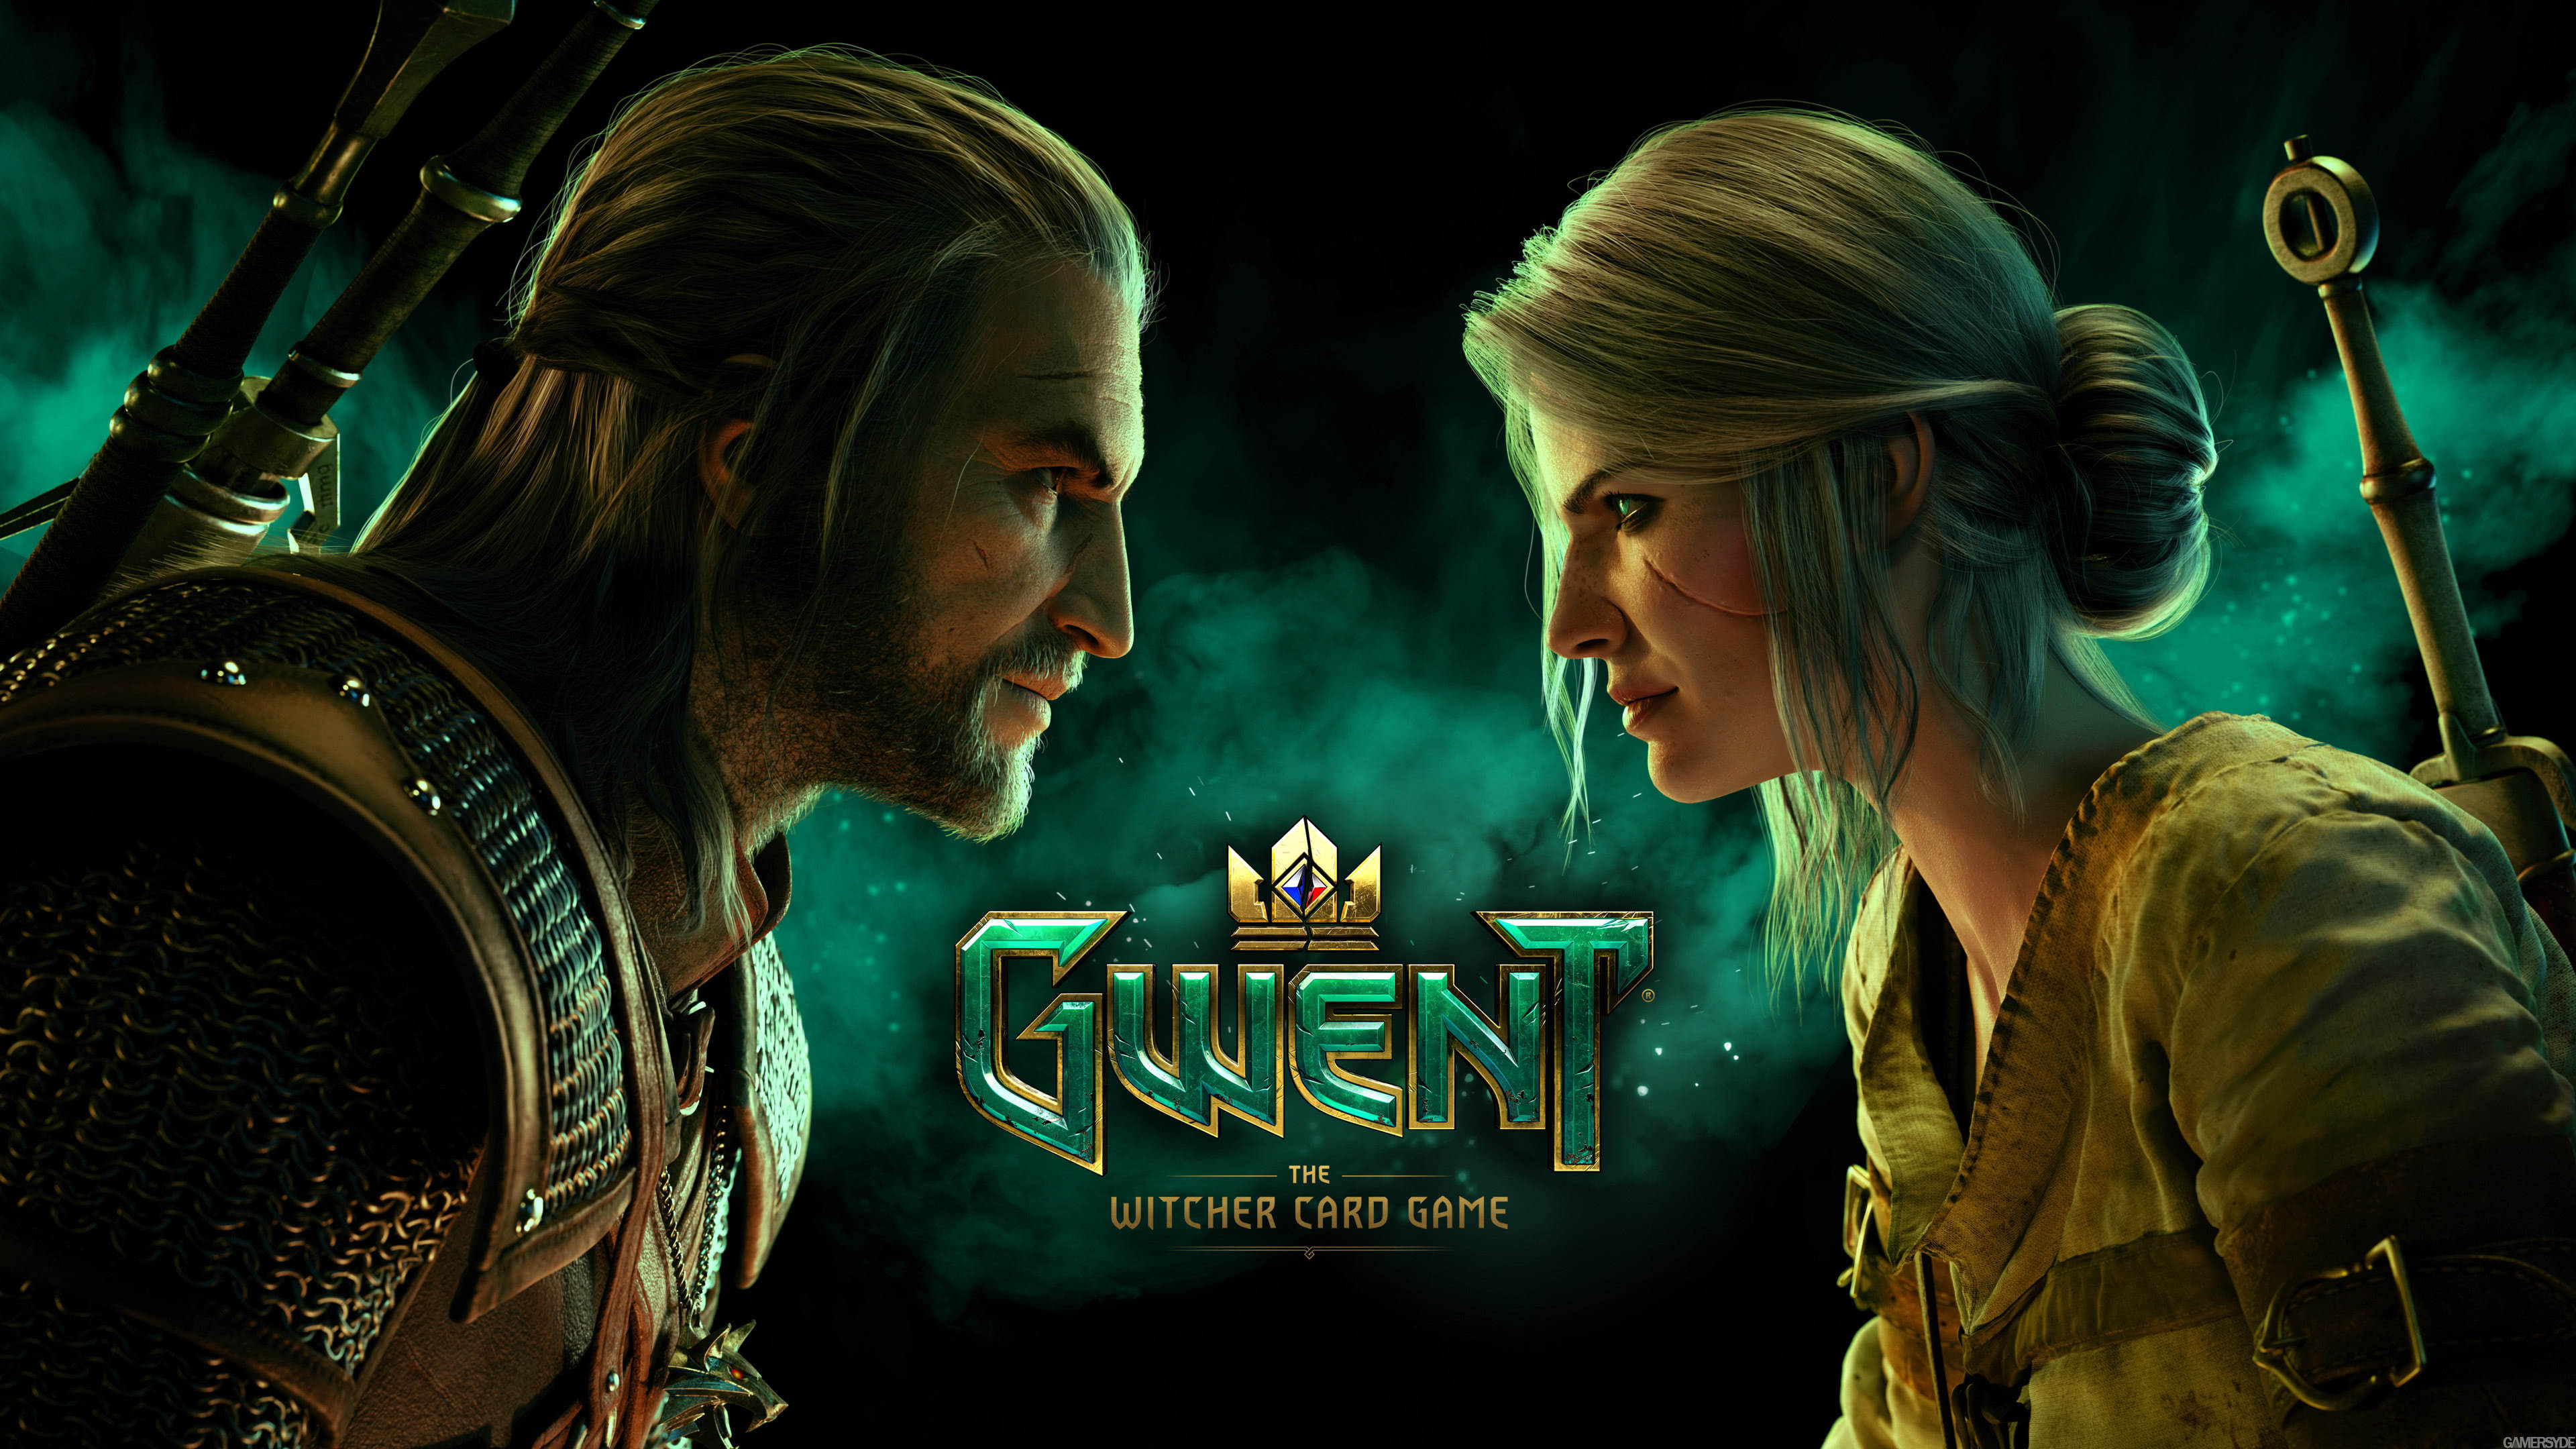 Gwent Witcher Card Game Homecoming PTR UHD 4K Wallpaper Pixelz 3840x2160